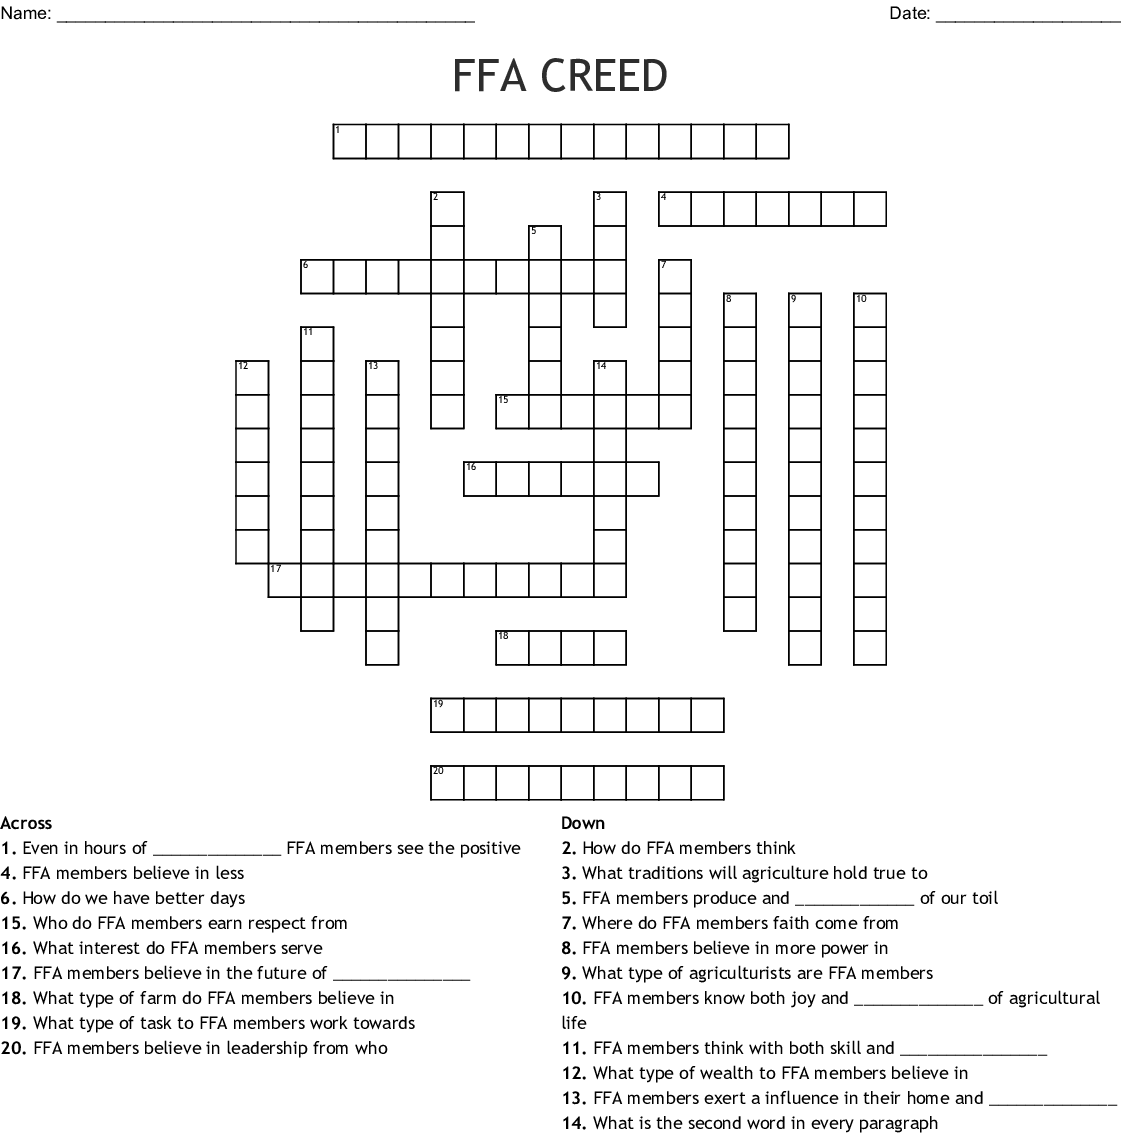 The Creed Crossword